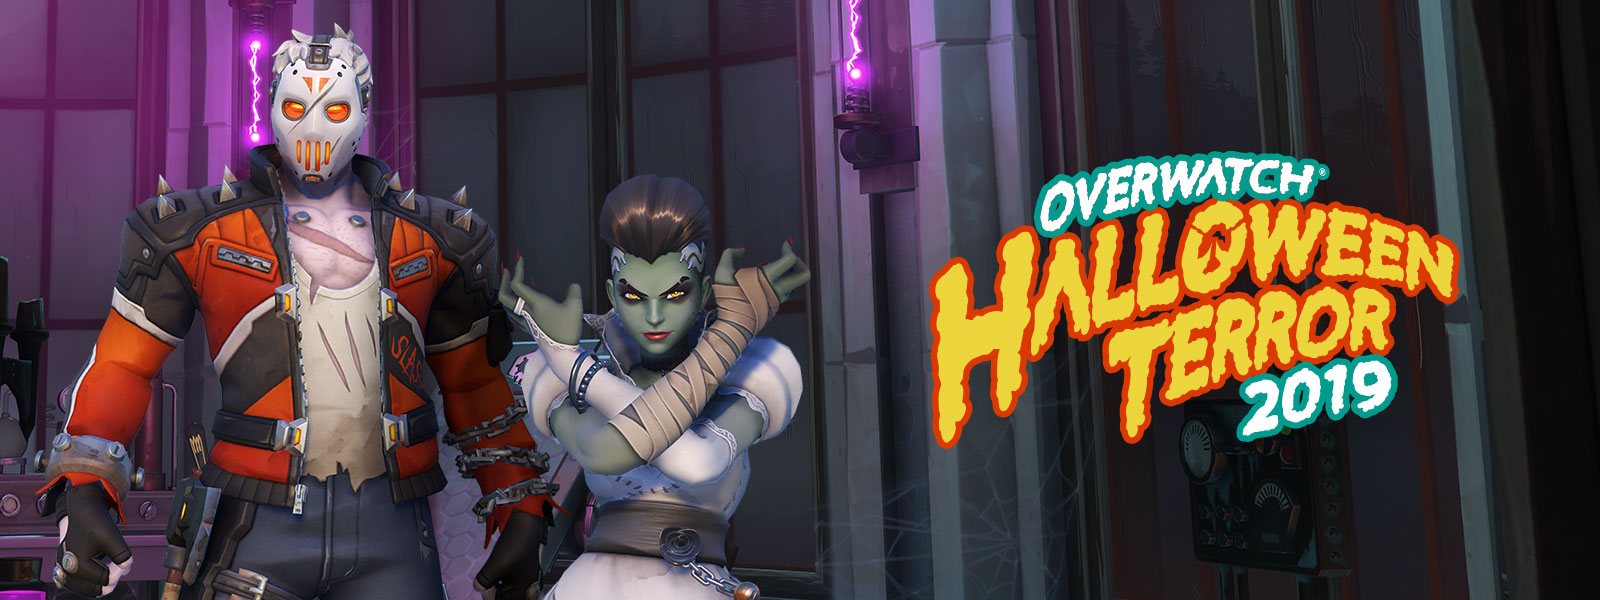 Overwatch Halloween Terror 2019 logo, two characters in Halloween skins in an old building with purple electricity and spider webs